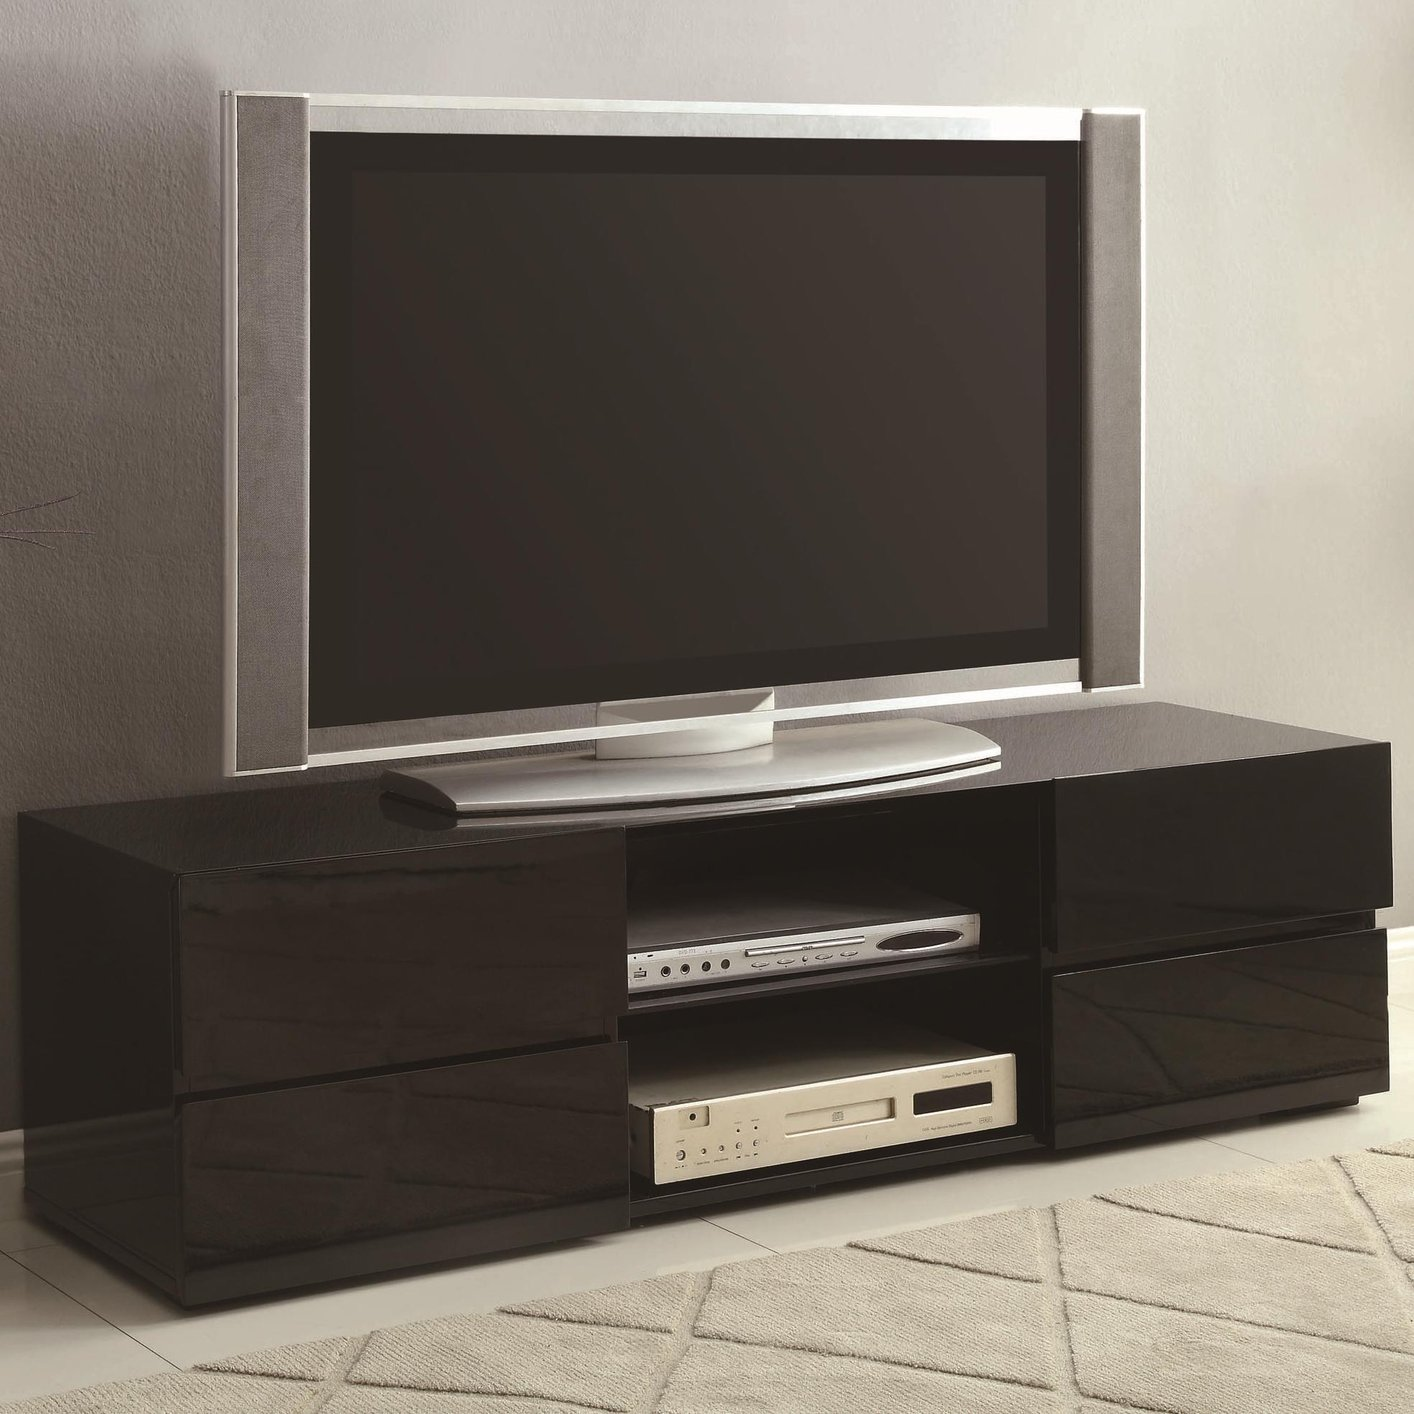 Tv Stand Coaster 700841 Black Wood Tv Stand Steal A Sofa